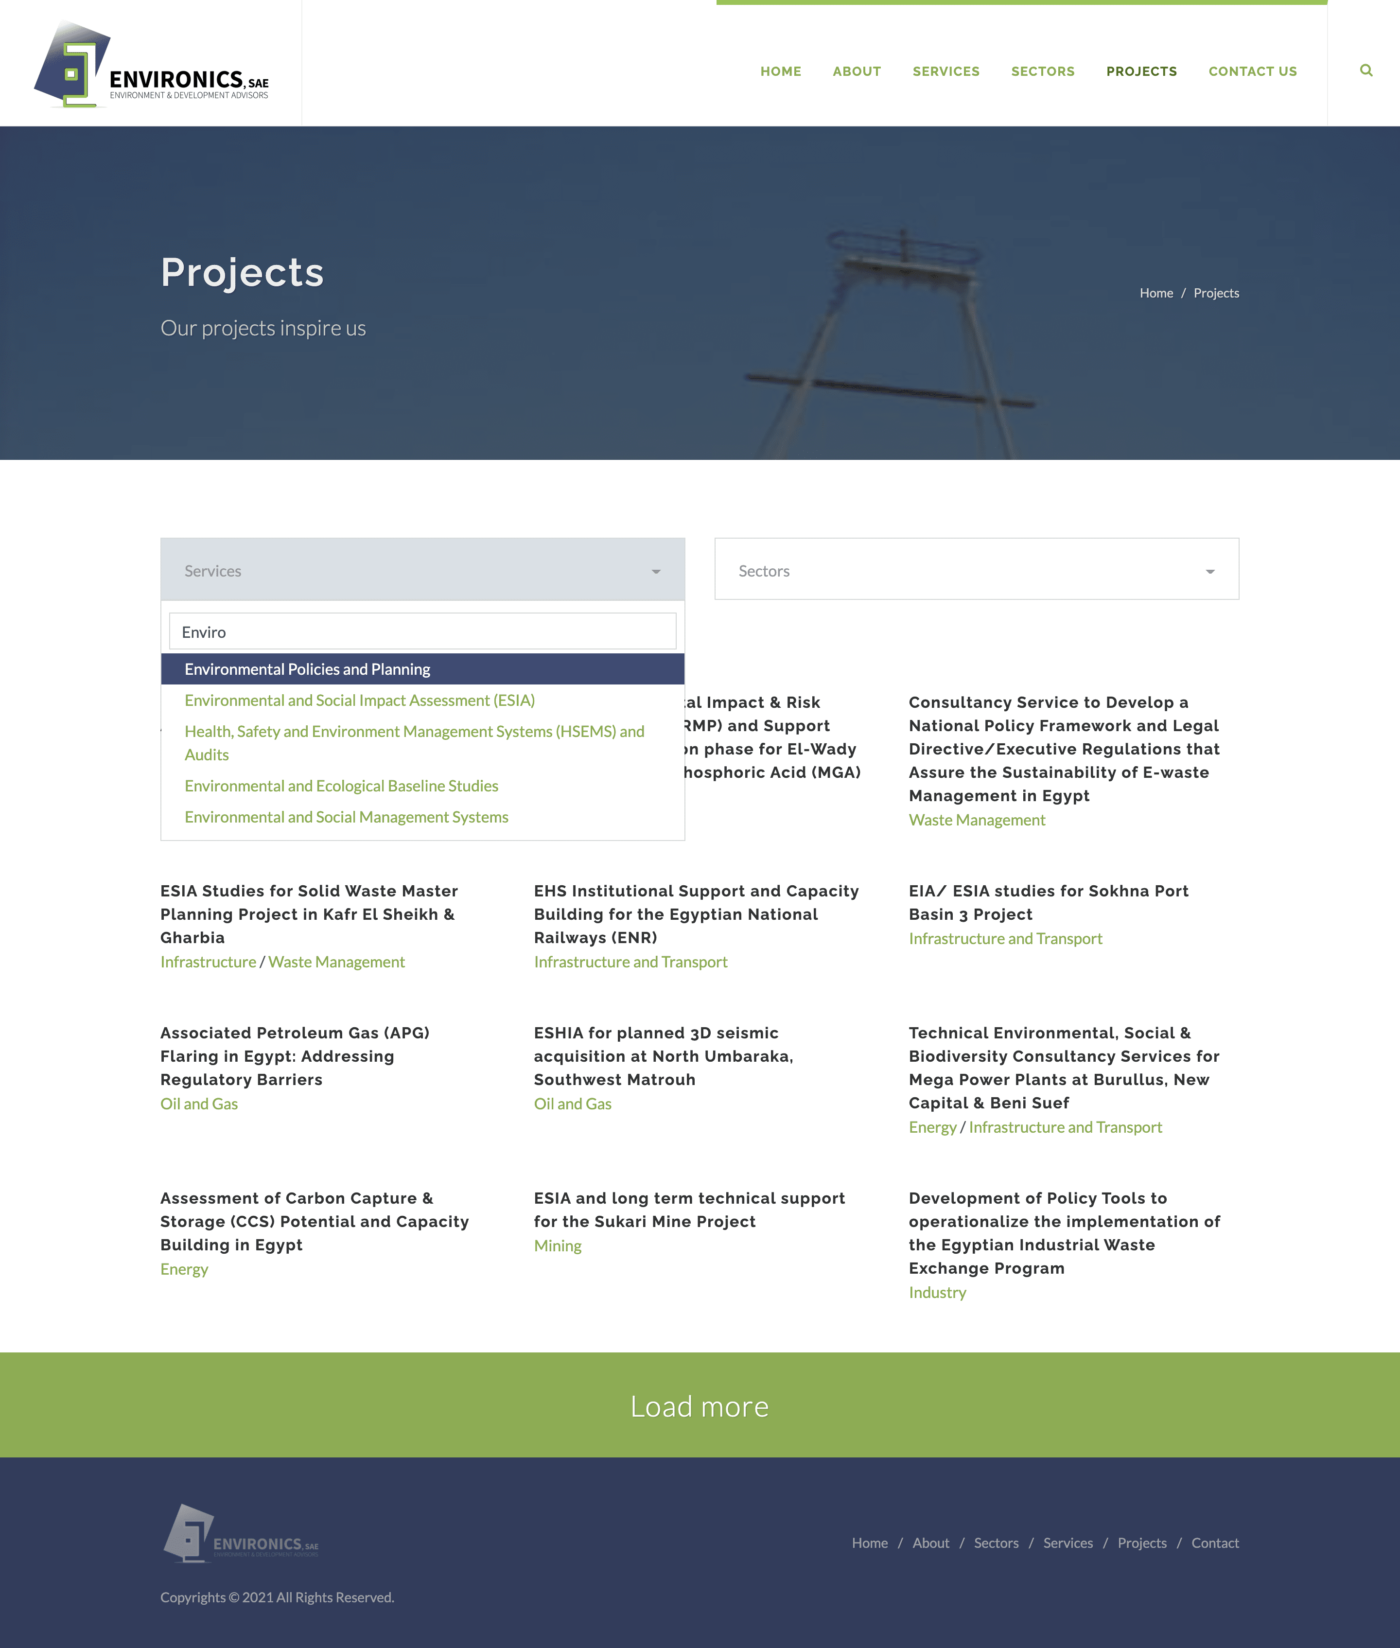 Data interaction and UI/UX of environics projects